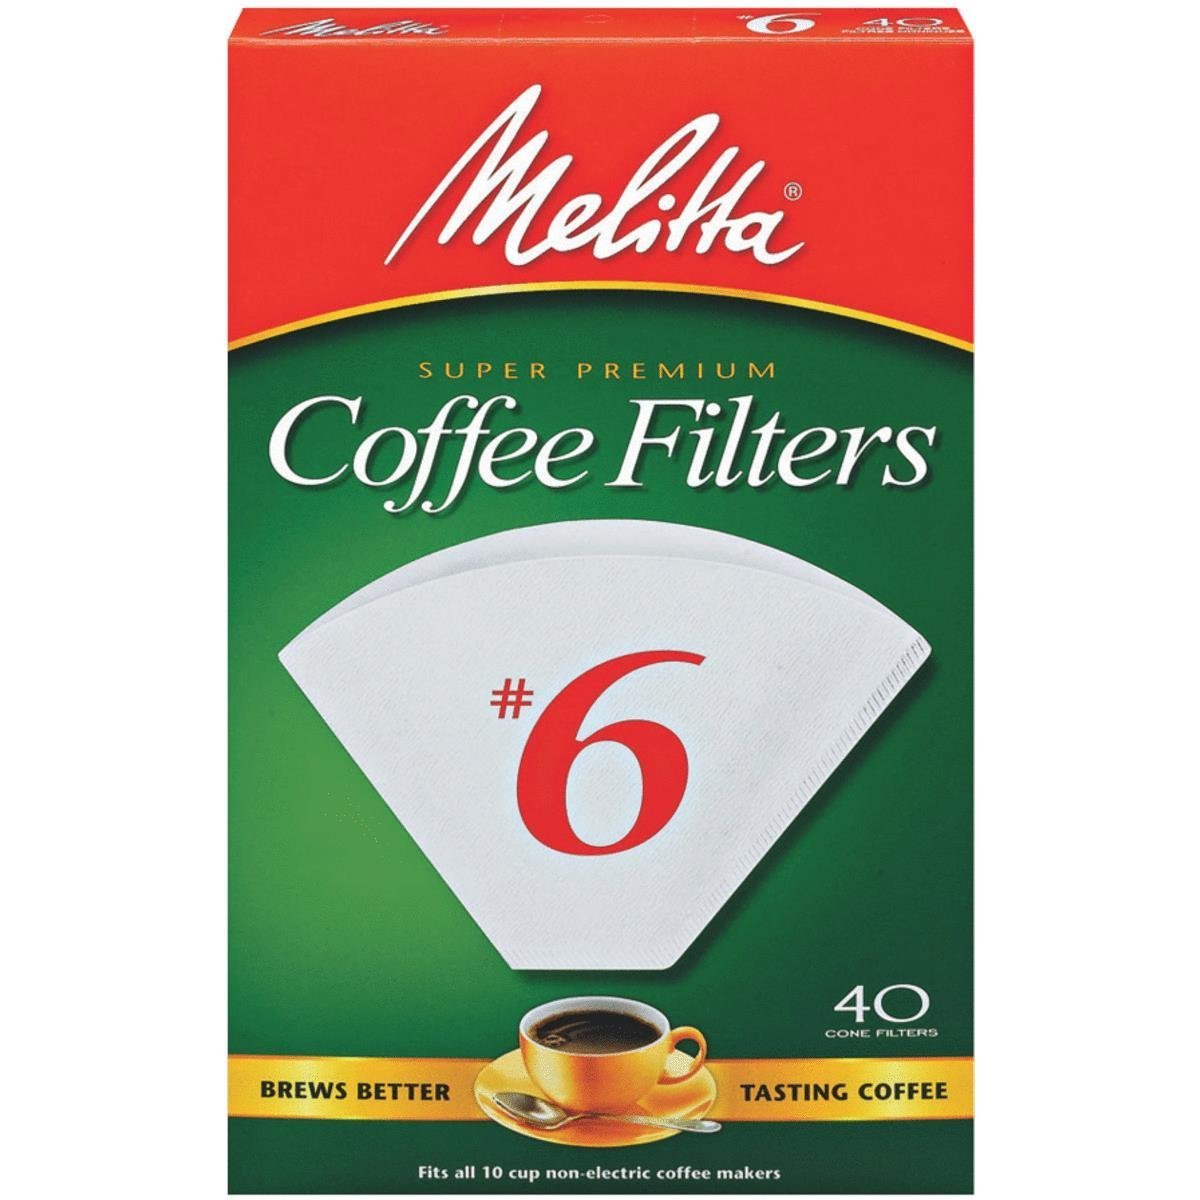 Melitta Cone Coffee Filters, White, No. 6, 40-Count Filters Pack of 2 (80 Filters Total) BHBU0503A859